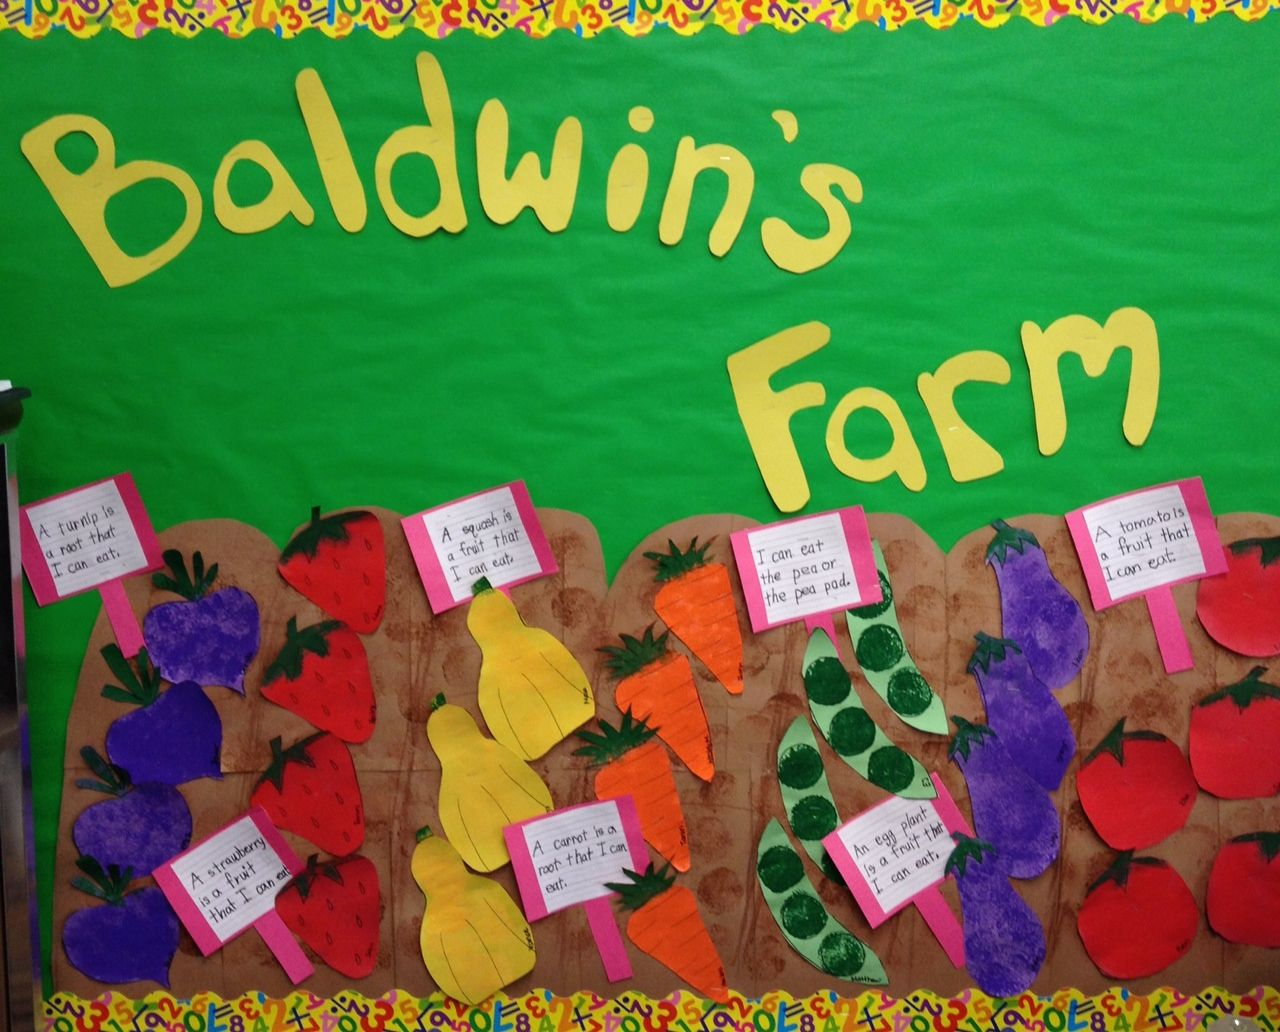 Go green vegetable bulletin board idea myclassroomideas com - Vegetable Garden Bulletin Board Here Are Some Close Ups Of The Veggies That The Kids